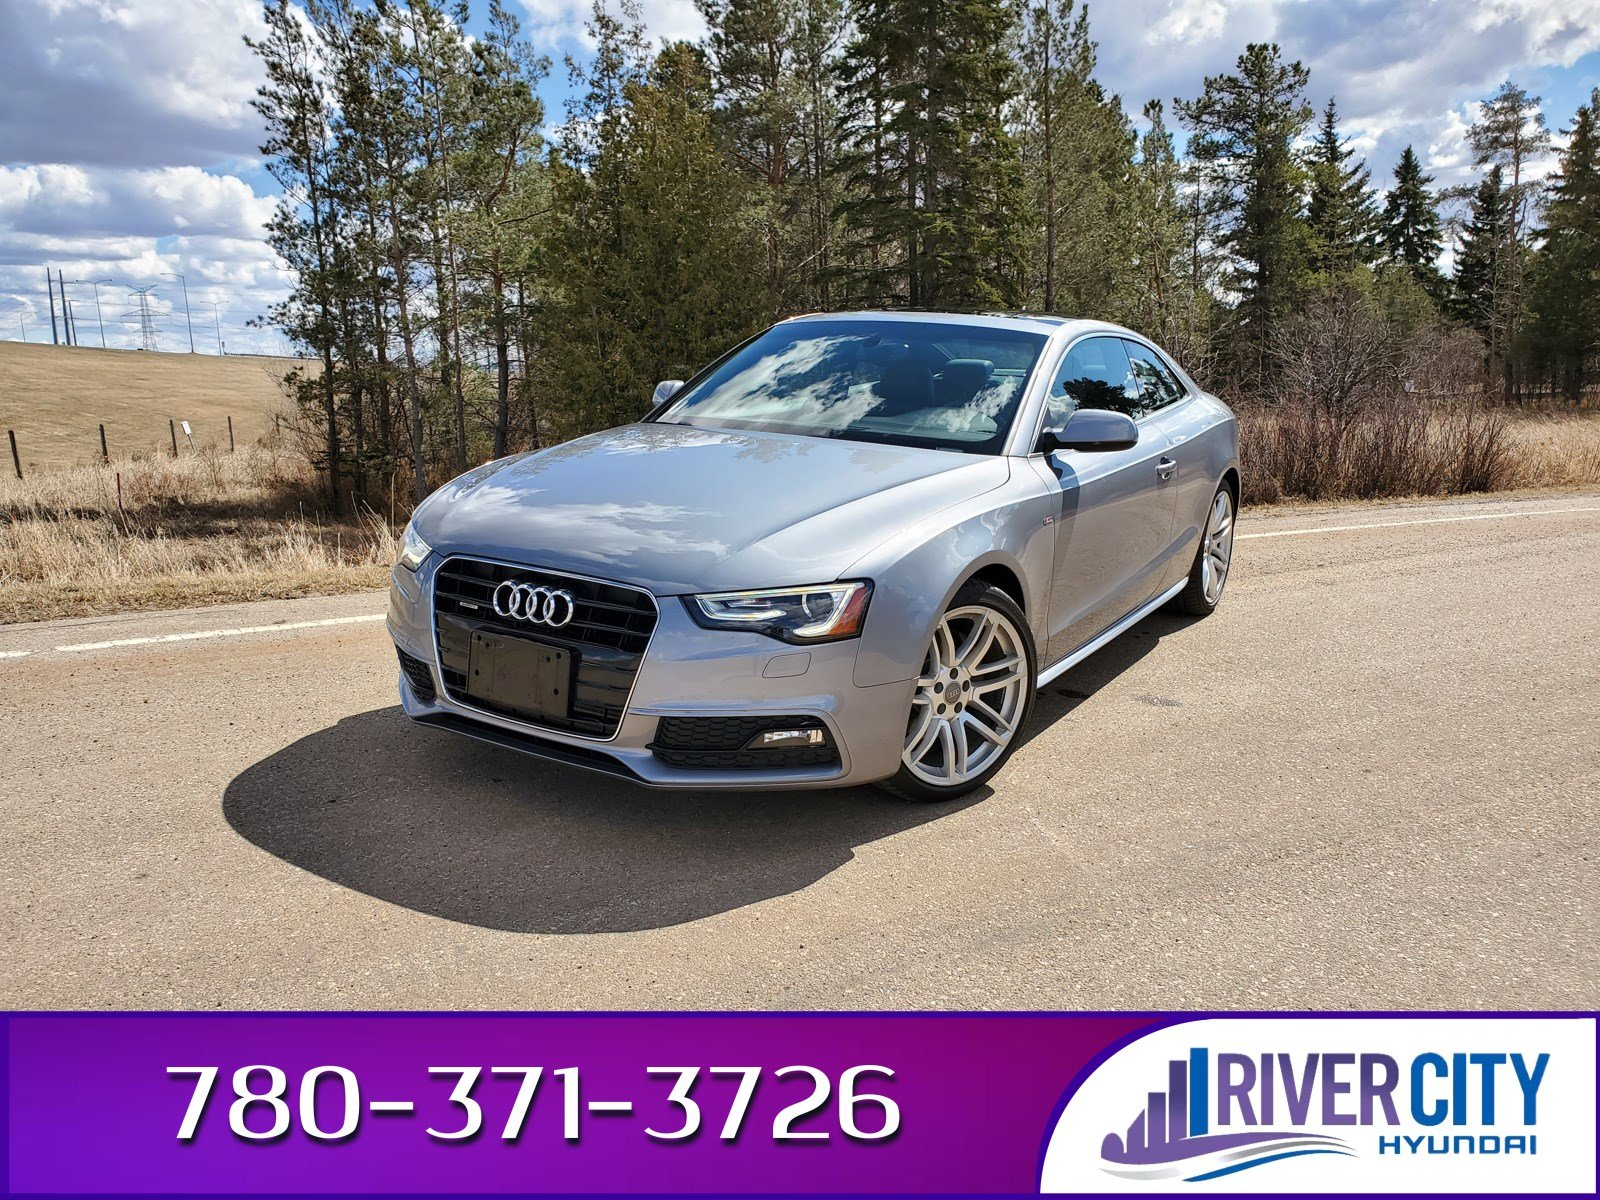 Pre-Owned 2015 Audi A5 S-LINE AWD Navigation (GPS), Leather, Sunroof, Back-up Cam, Bluetooth, A/C,